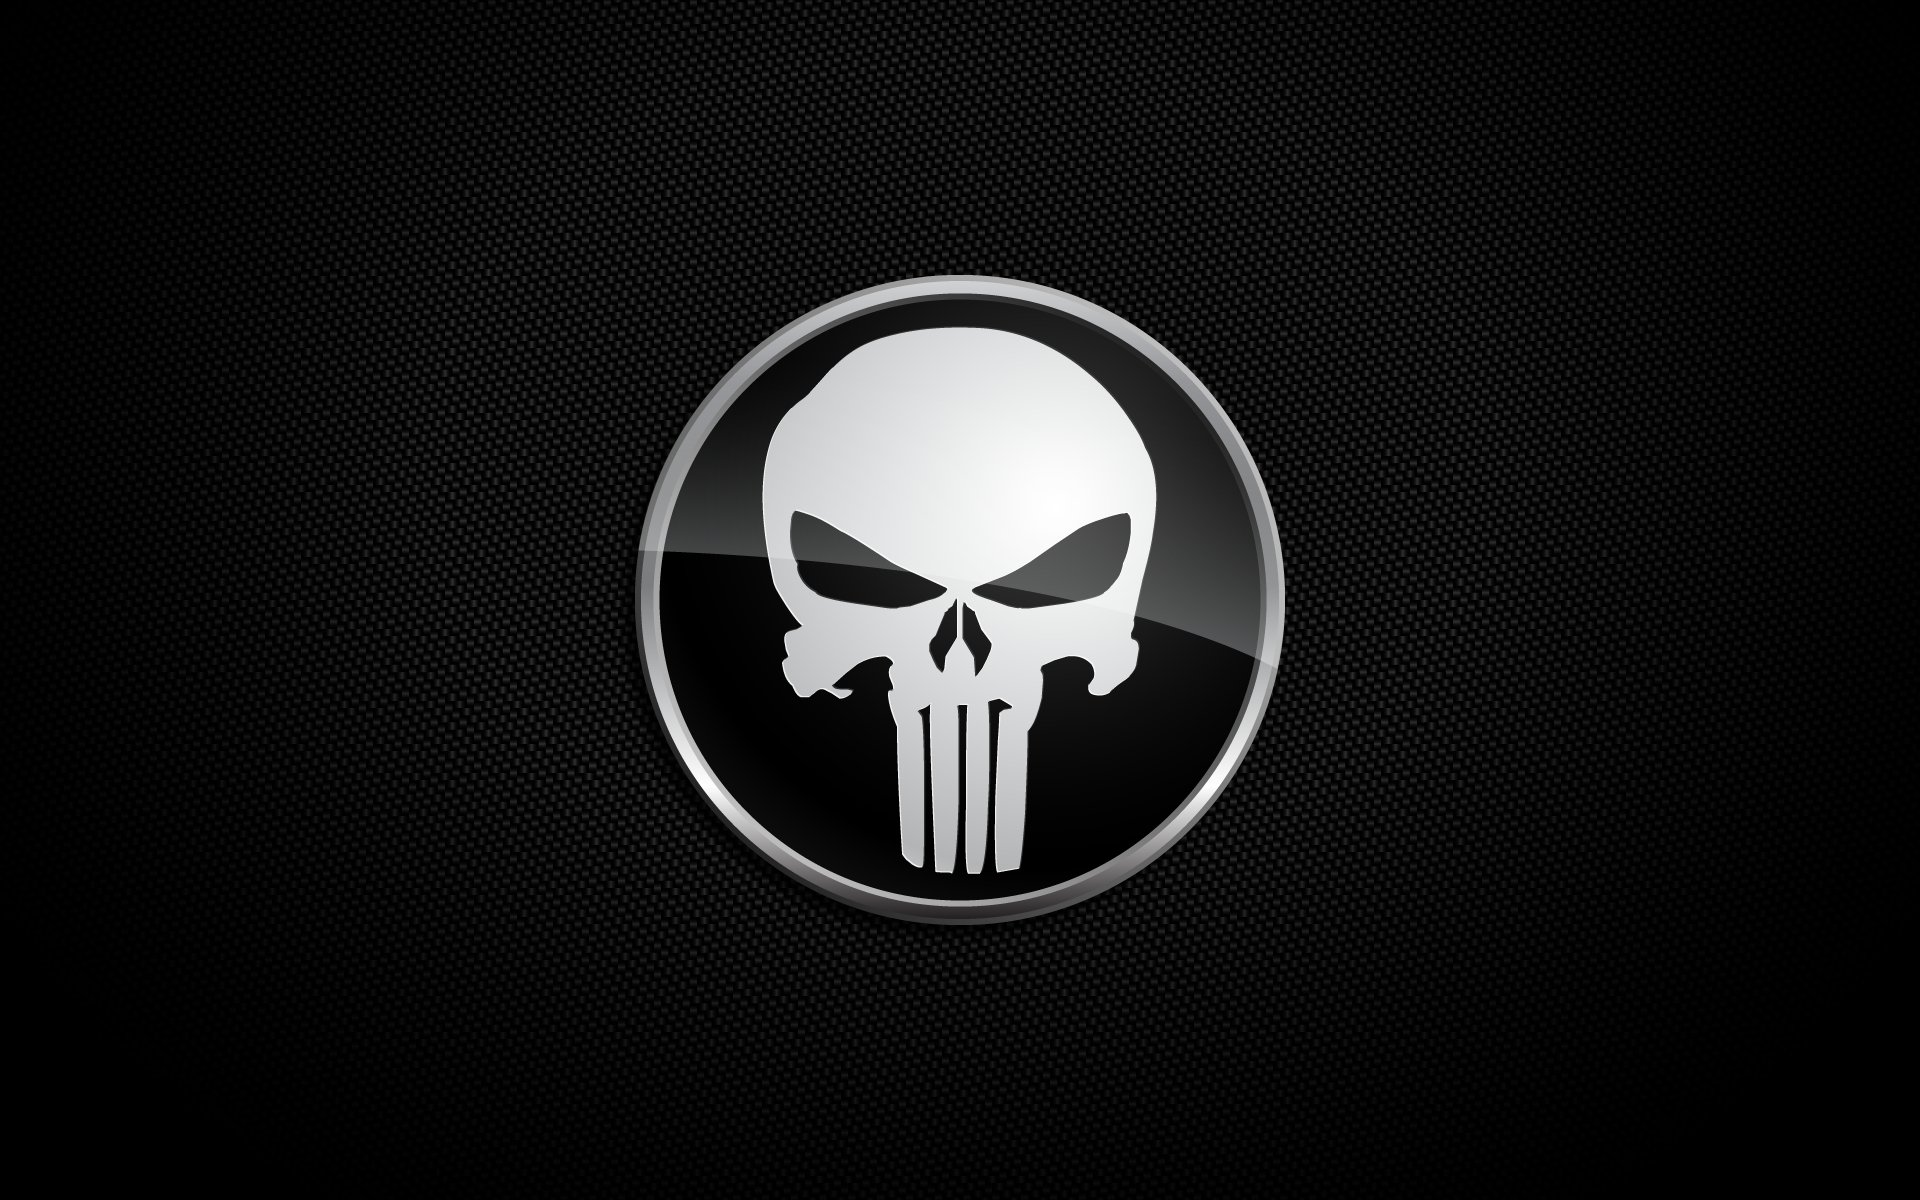 200 punisher hd wallpapers background images wallpaper abyss hd wallpaper background image id156022 voltagebd Images